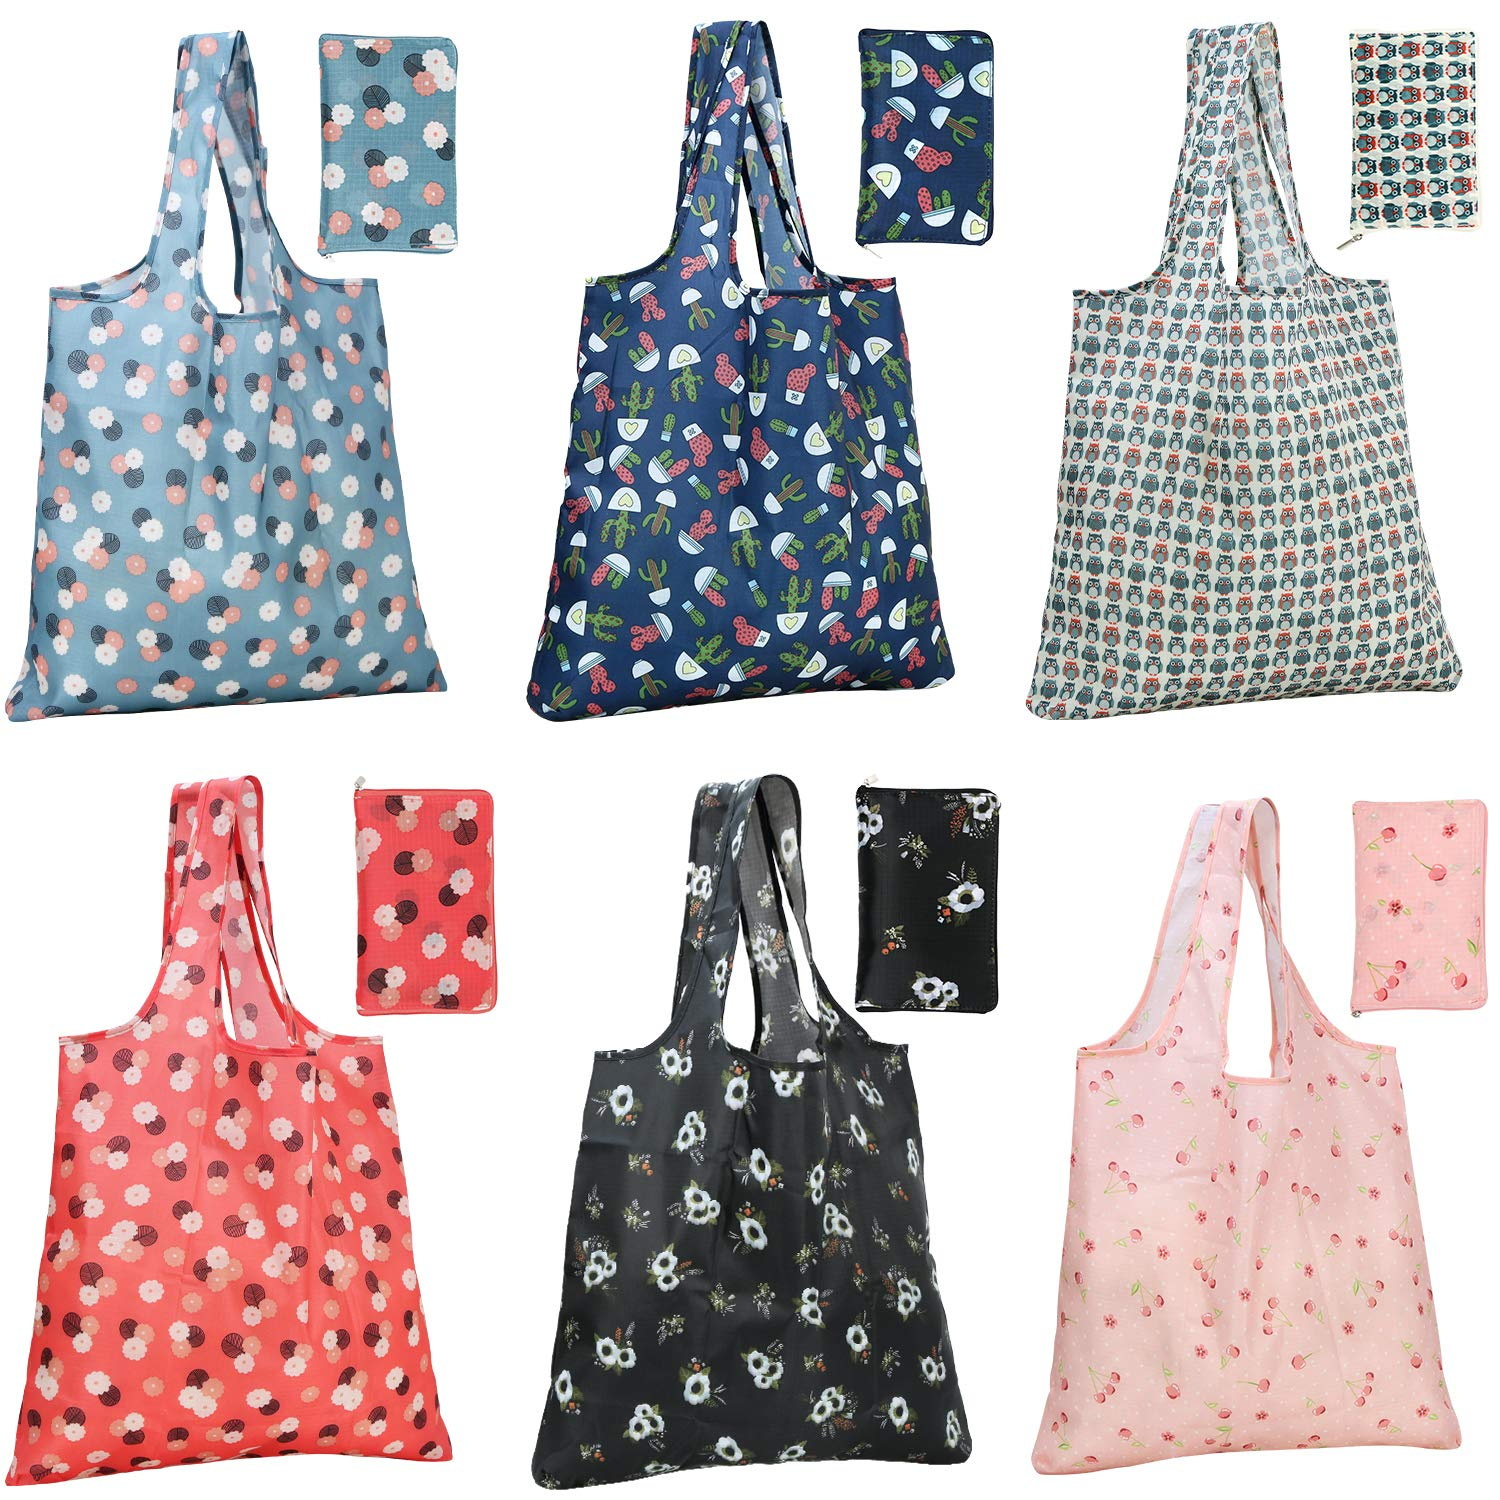 WiseLife Grocery Bags Reusable Foldable Shopping Bags with Pouch Ripstop Waterproof Large Groceries Bags for Shopping Tote Bags 6 Packs Mixed with Cute Patterns Machine Washable